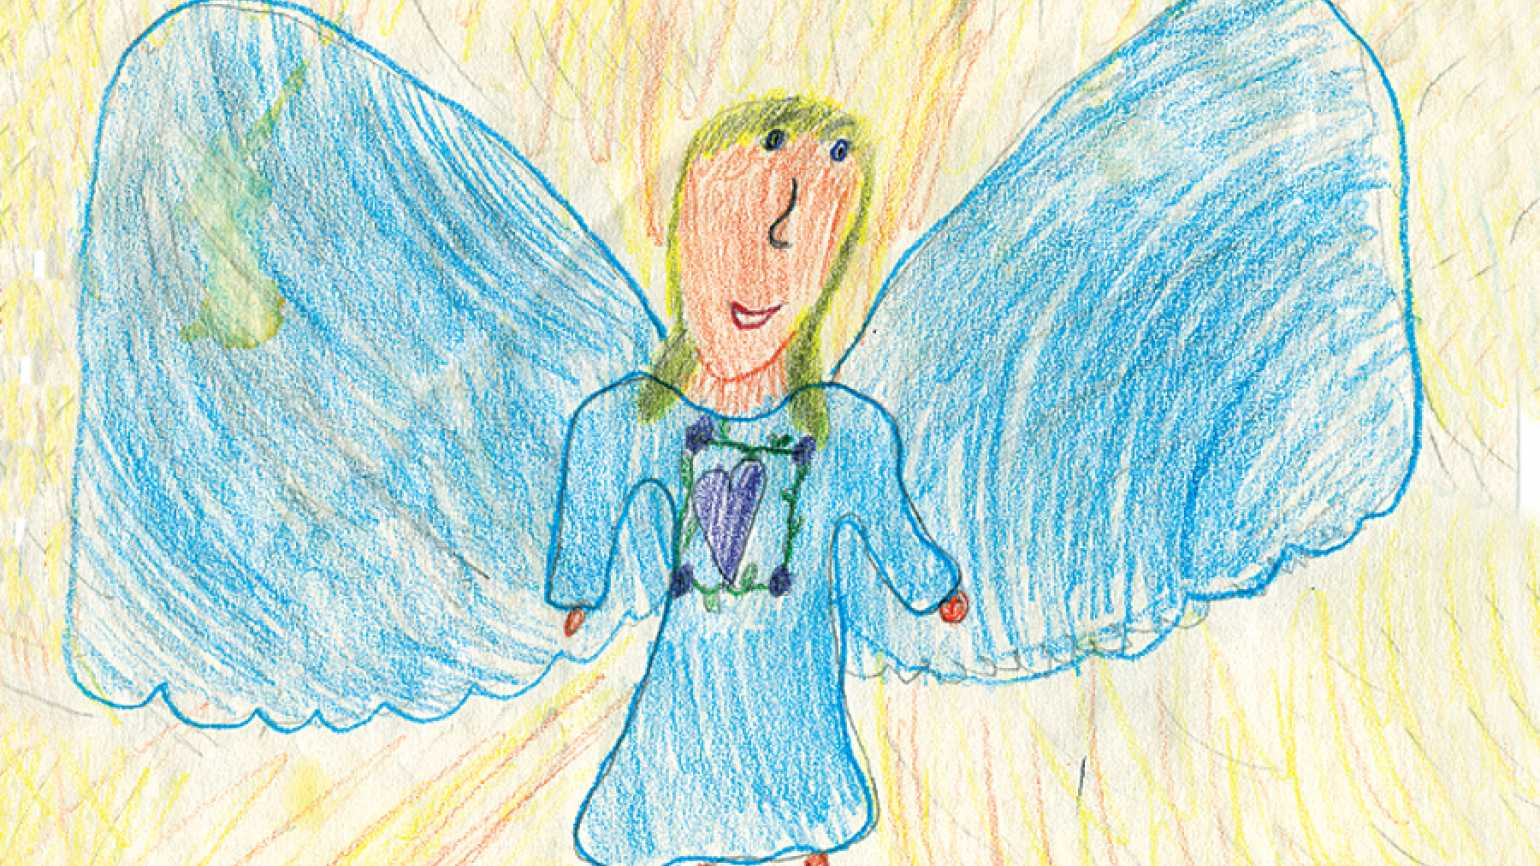 One of Abby's angel drawings